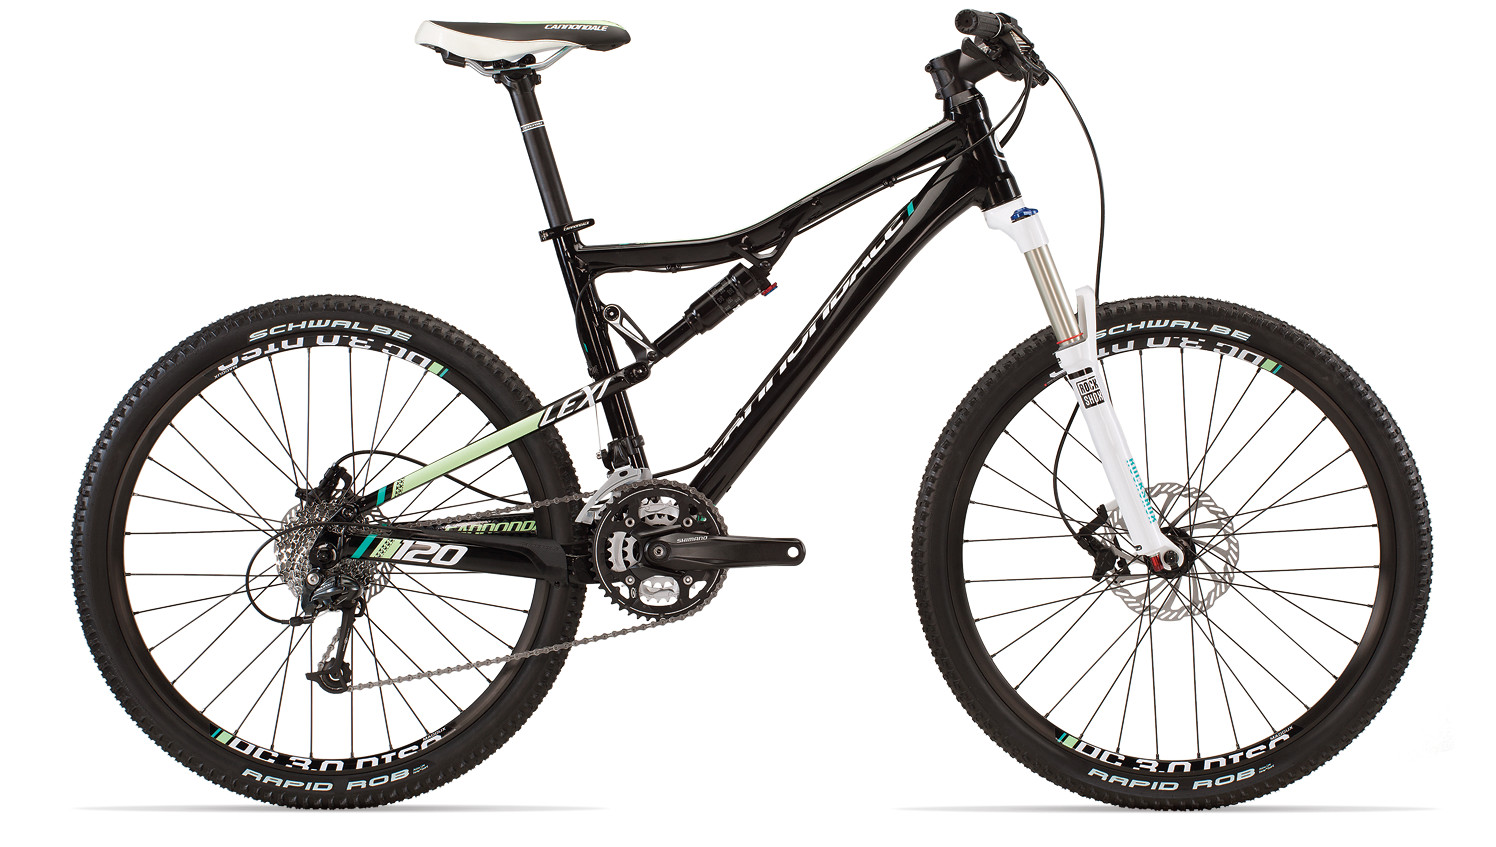 bike - 2014 Cannondale Lexi 3